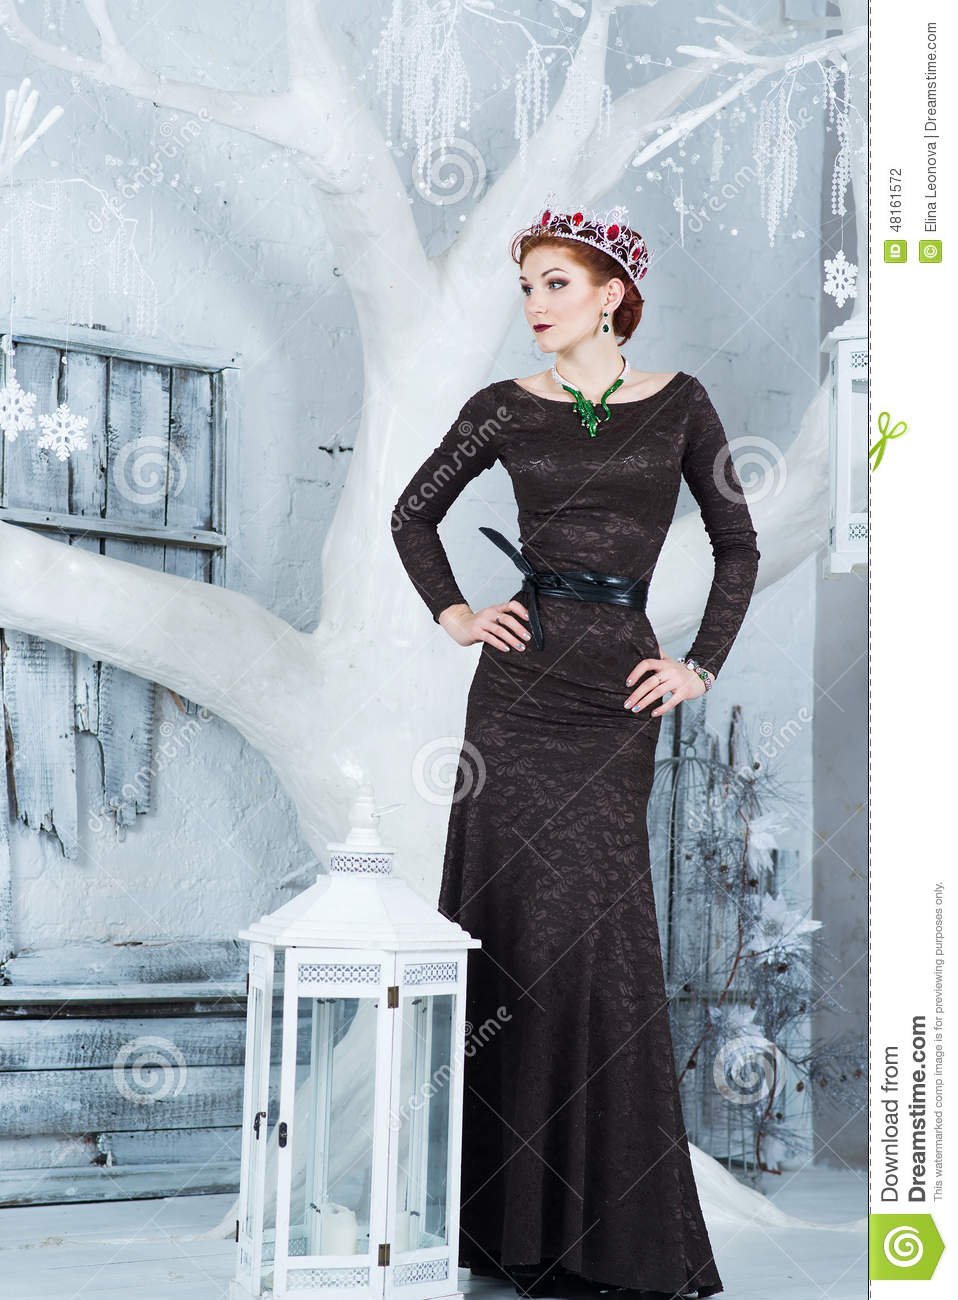 schnee k nigin dezember elegante frau im langen kleid. Black Bedroom Furniture Sets. Home Design Ideas